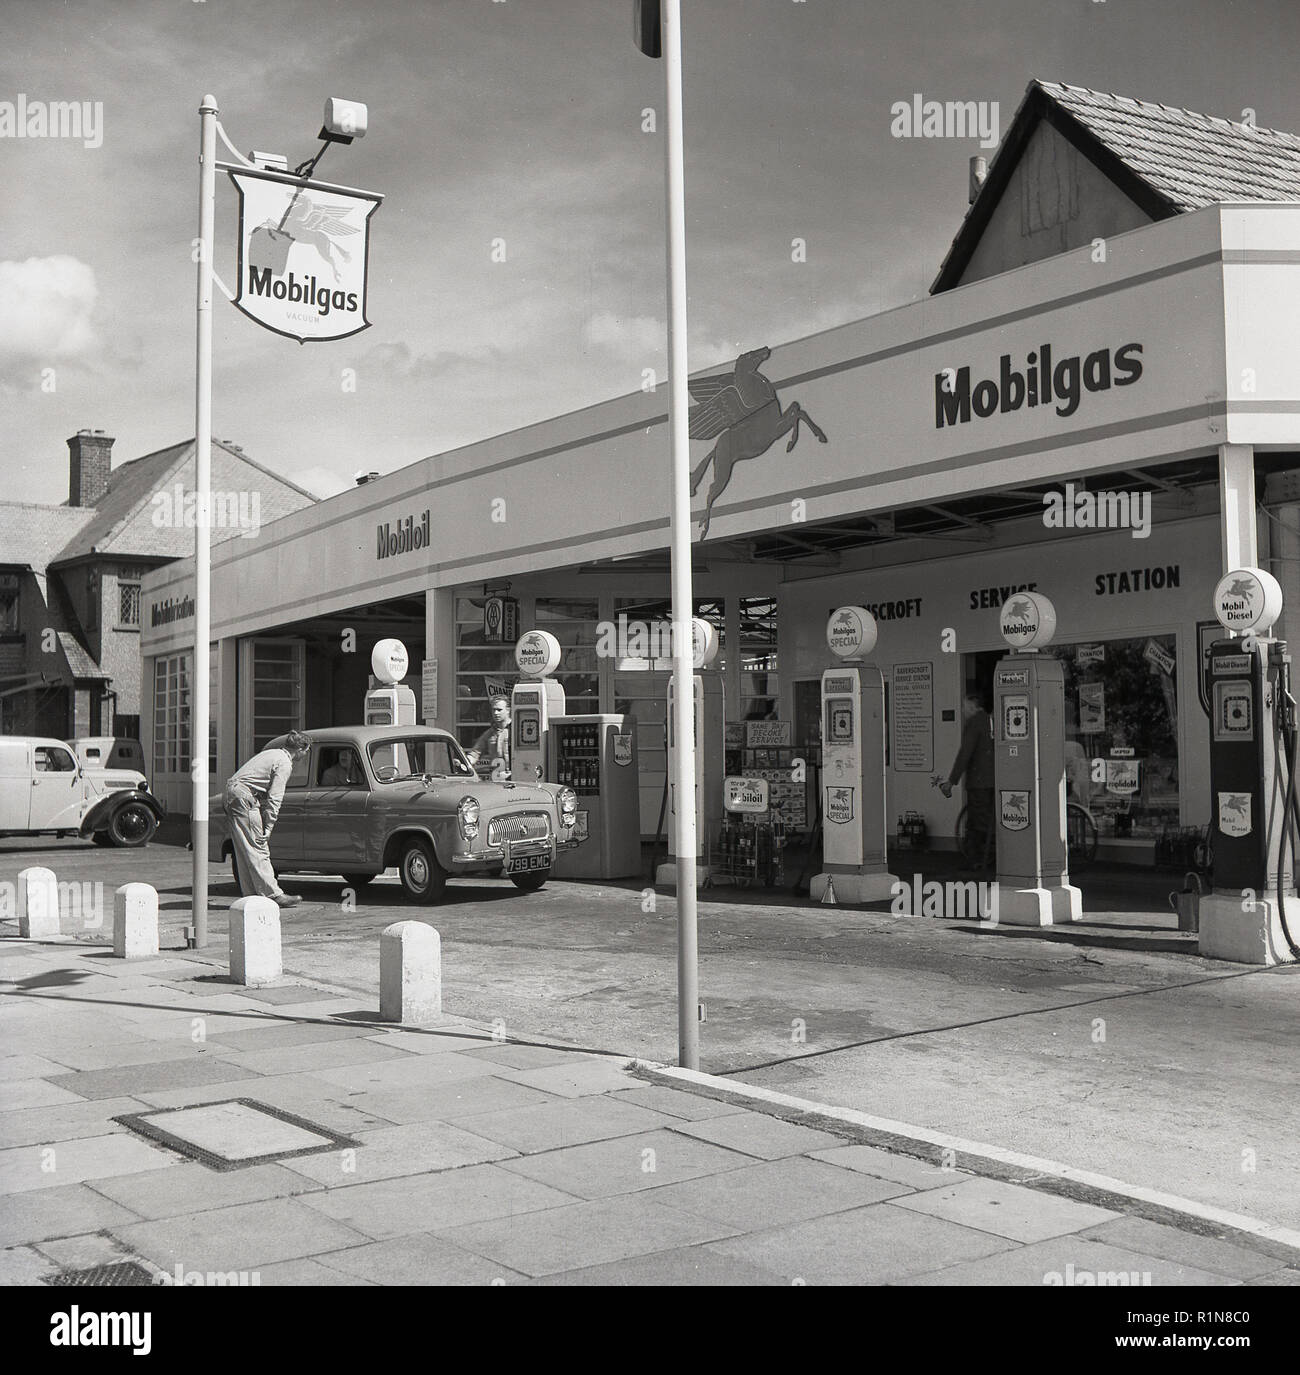 1950s, historical, the golden days of motoring, a service station sttendant talks to a driver of a car at the petrol pumps at the Mobilgas Ravenscroft Service Station on the Great West Road, London, England, UK. - Stock Image